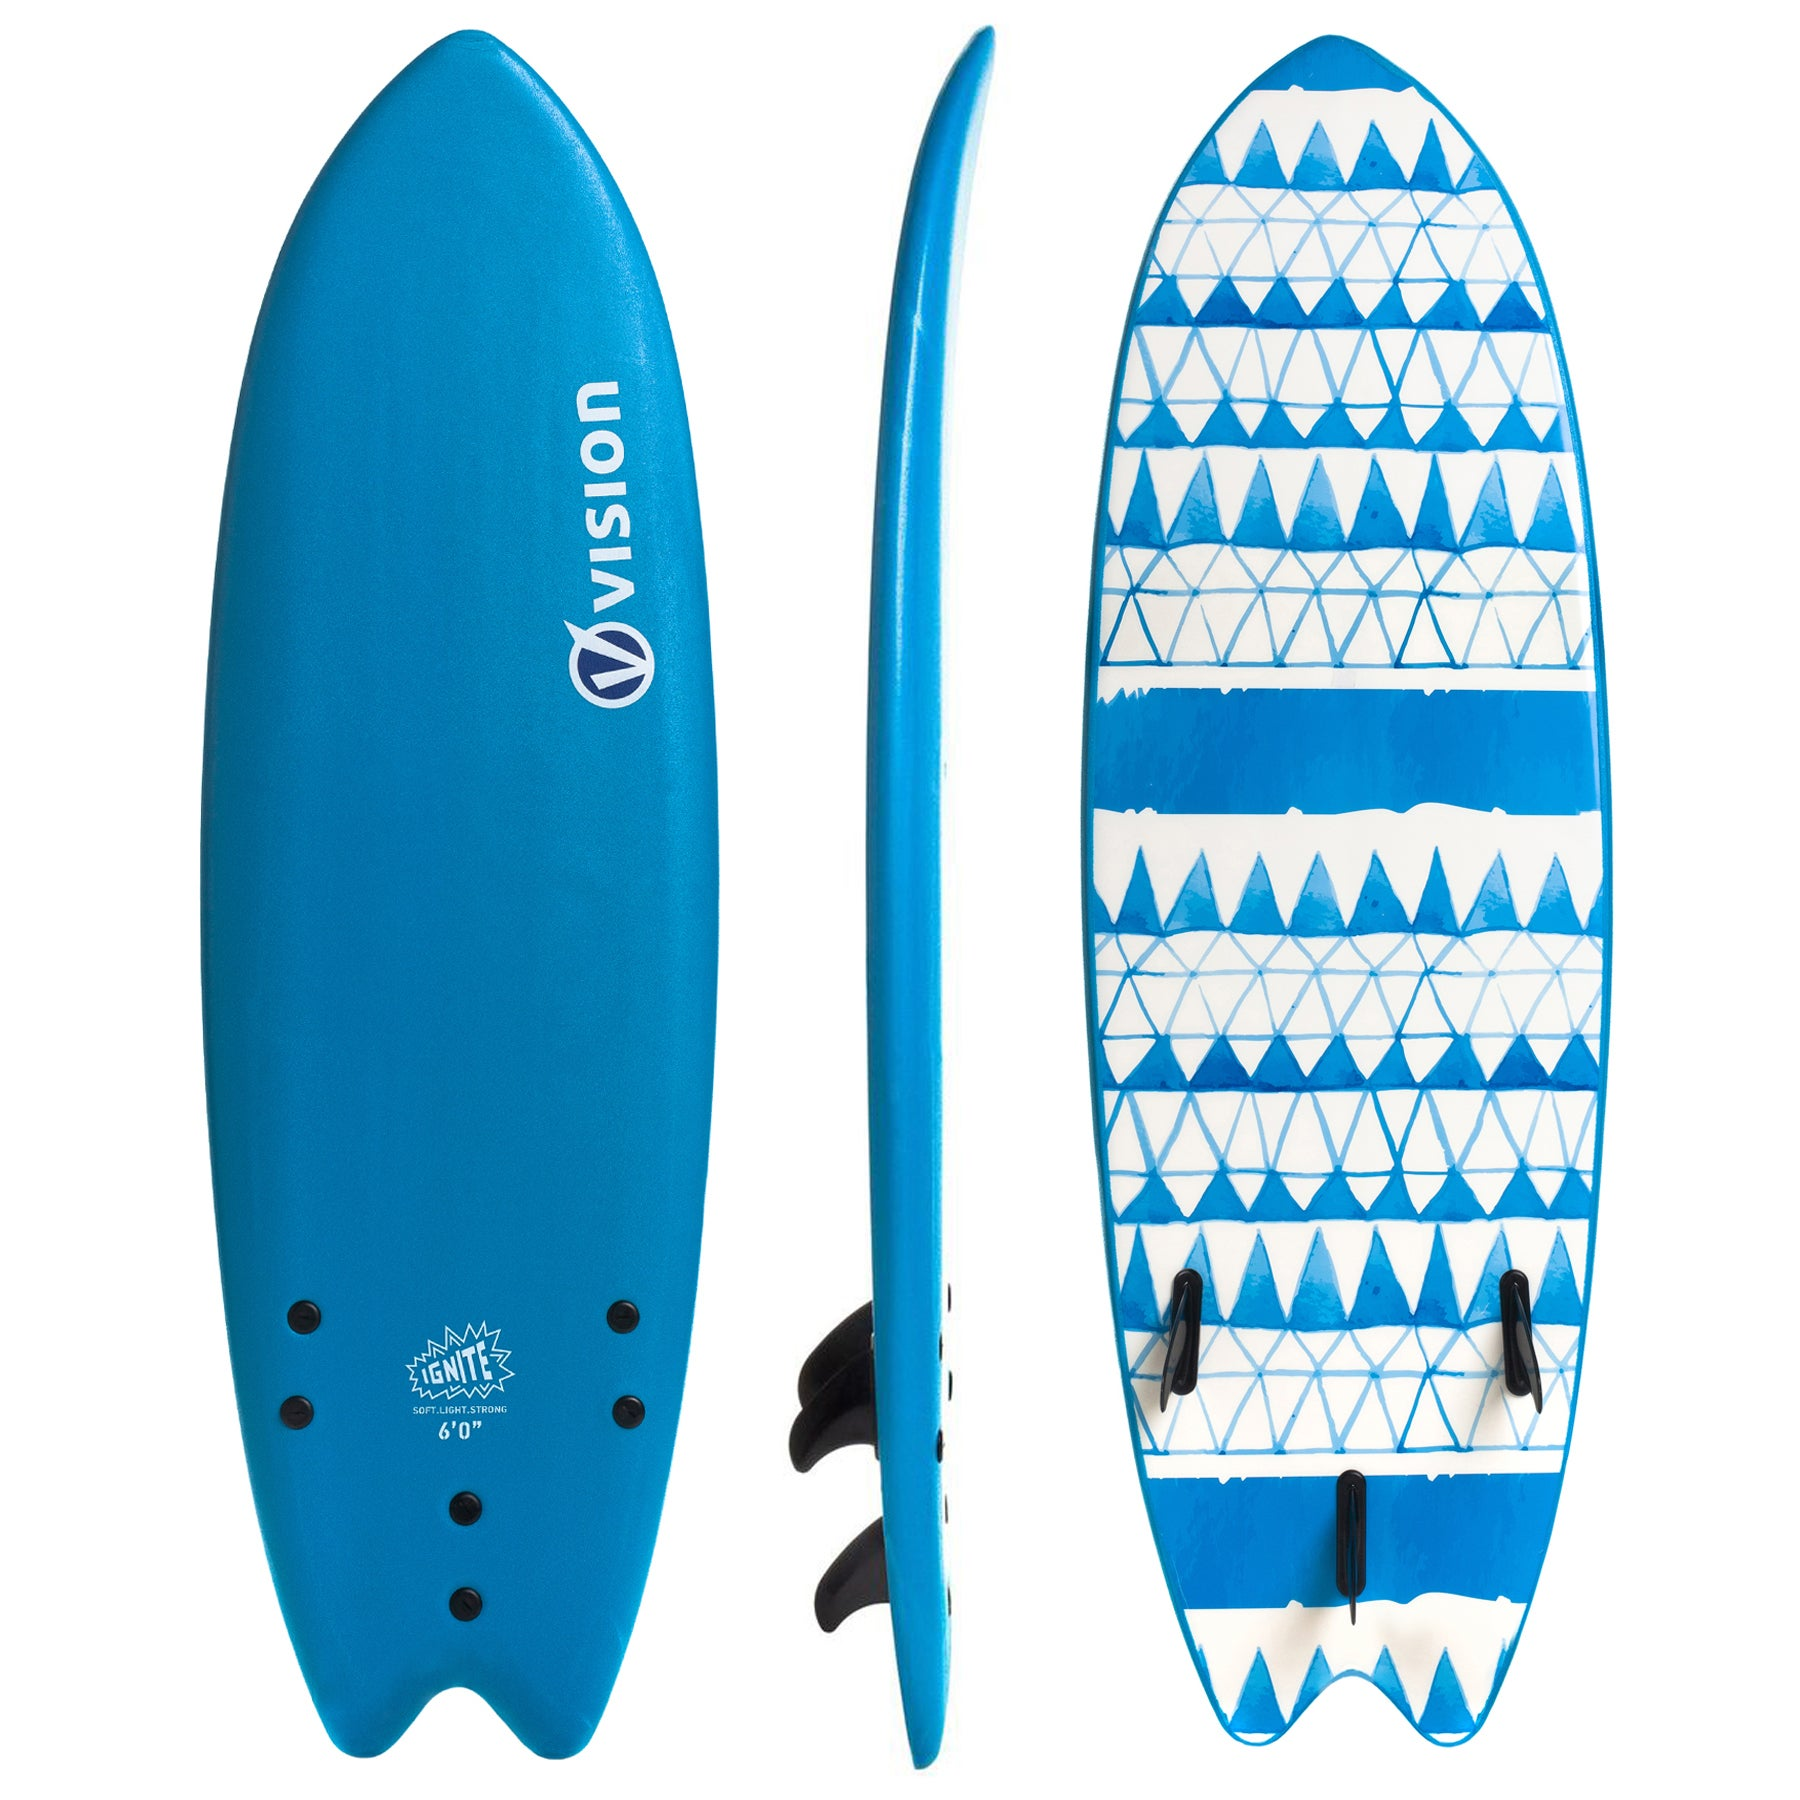 Vision Ignite Fish Soft Deck & Slick Bottom Surfboard